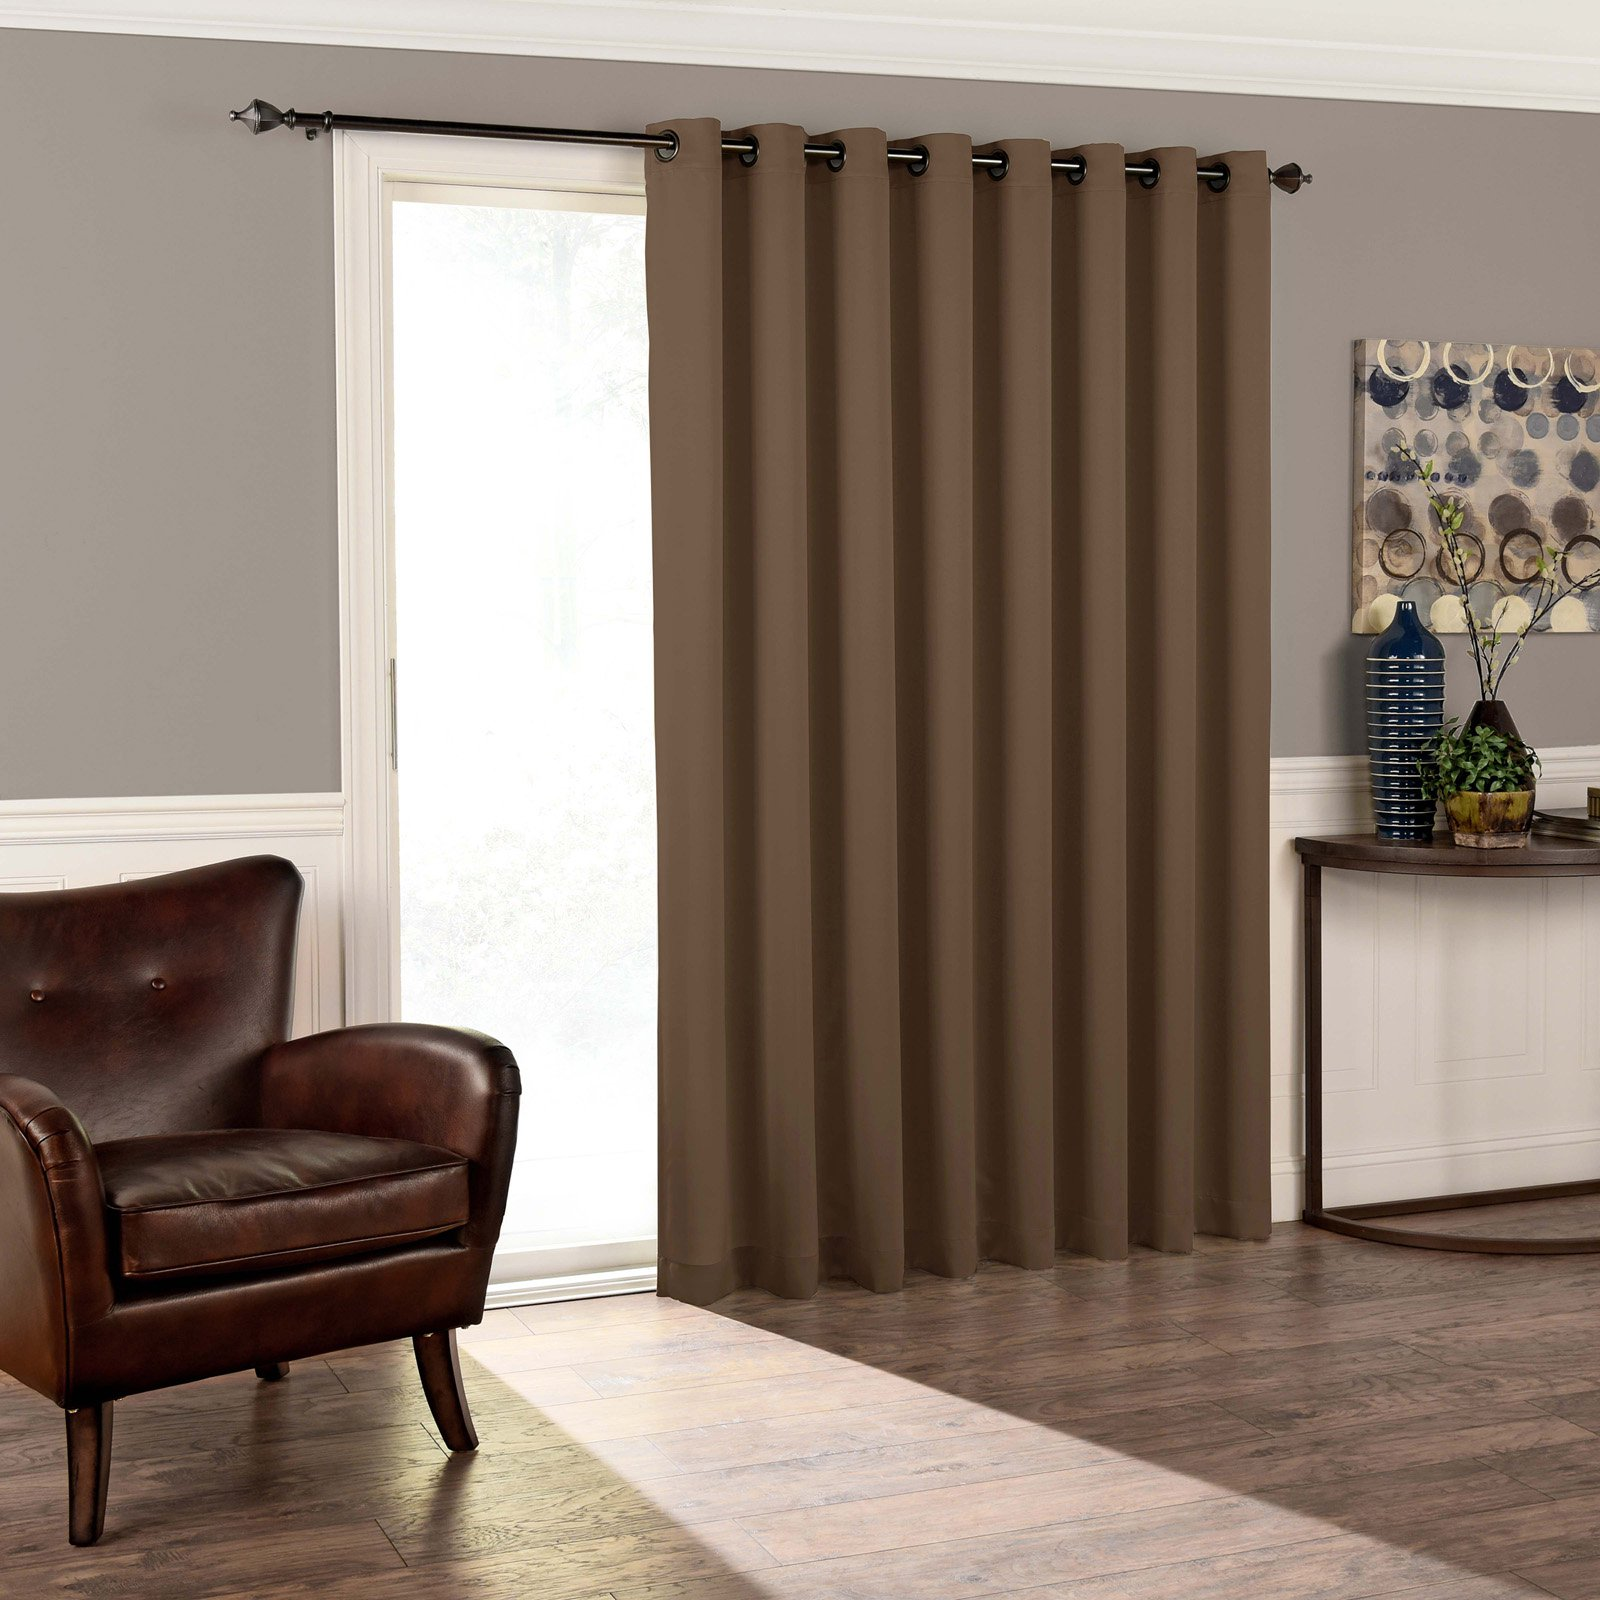 Eclipse Thermal Blackout Tricia Patio Door Window Curtain